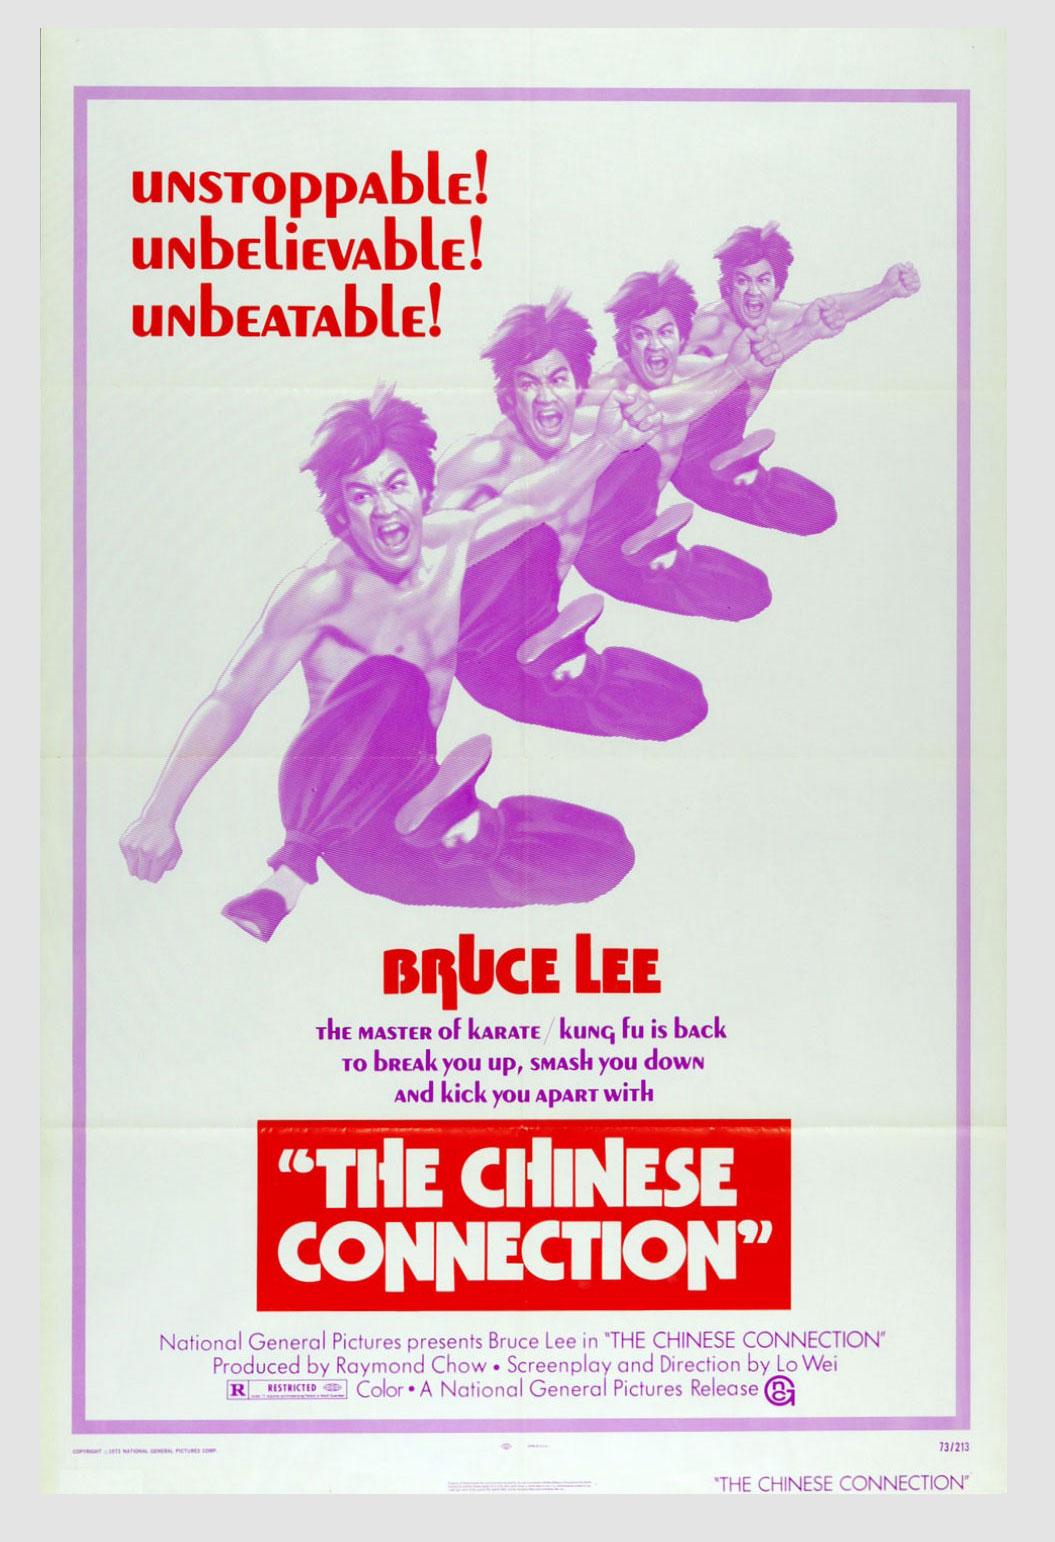 Bruce Lee Movie Poster 1973 The Chinese Connection Fist of Fury 24 x 41 1 sheet